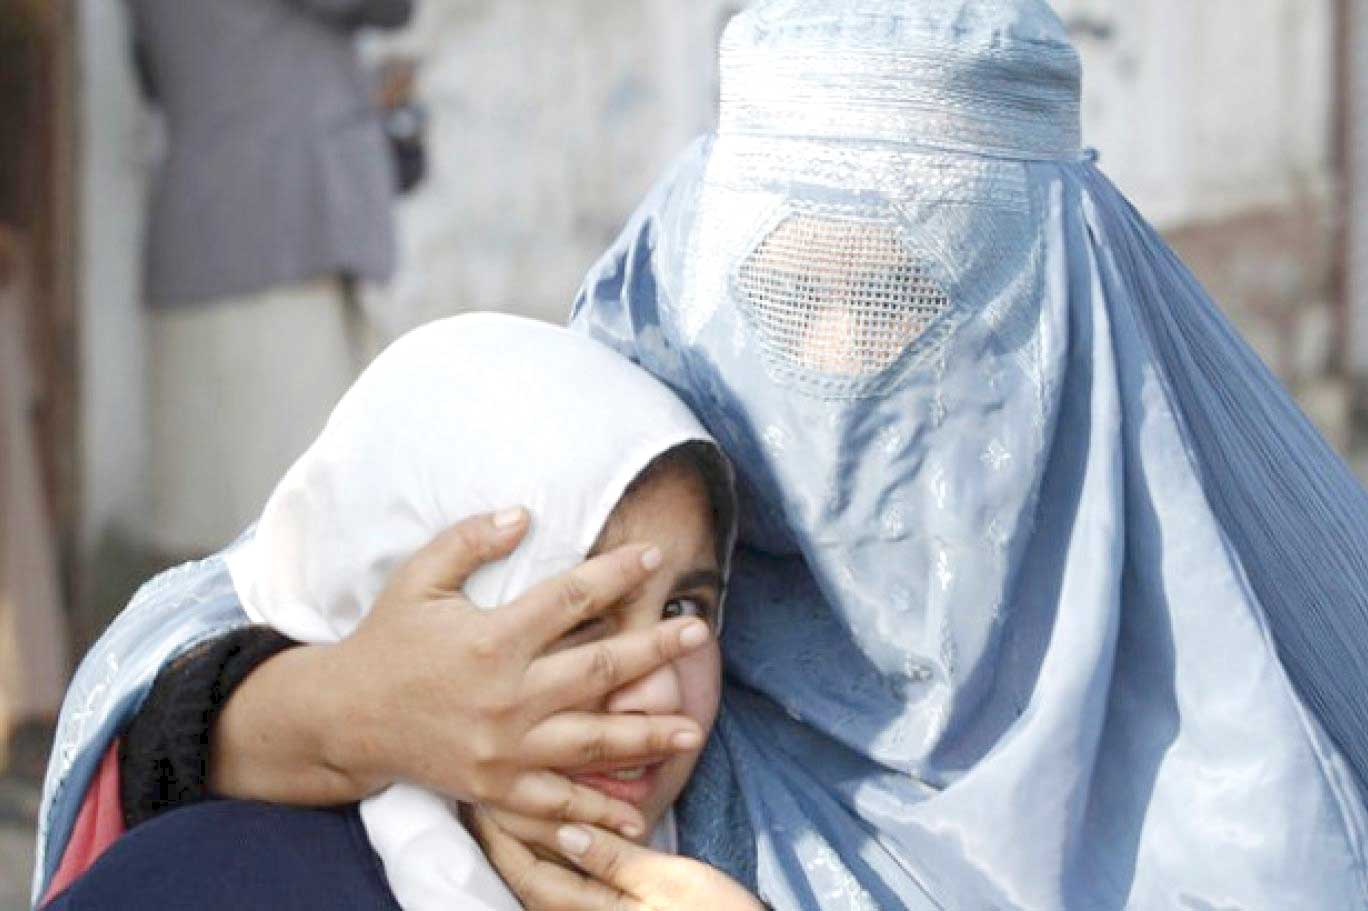 US Embassy in Kabul Warns of Extremist Attacks Against Women